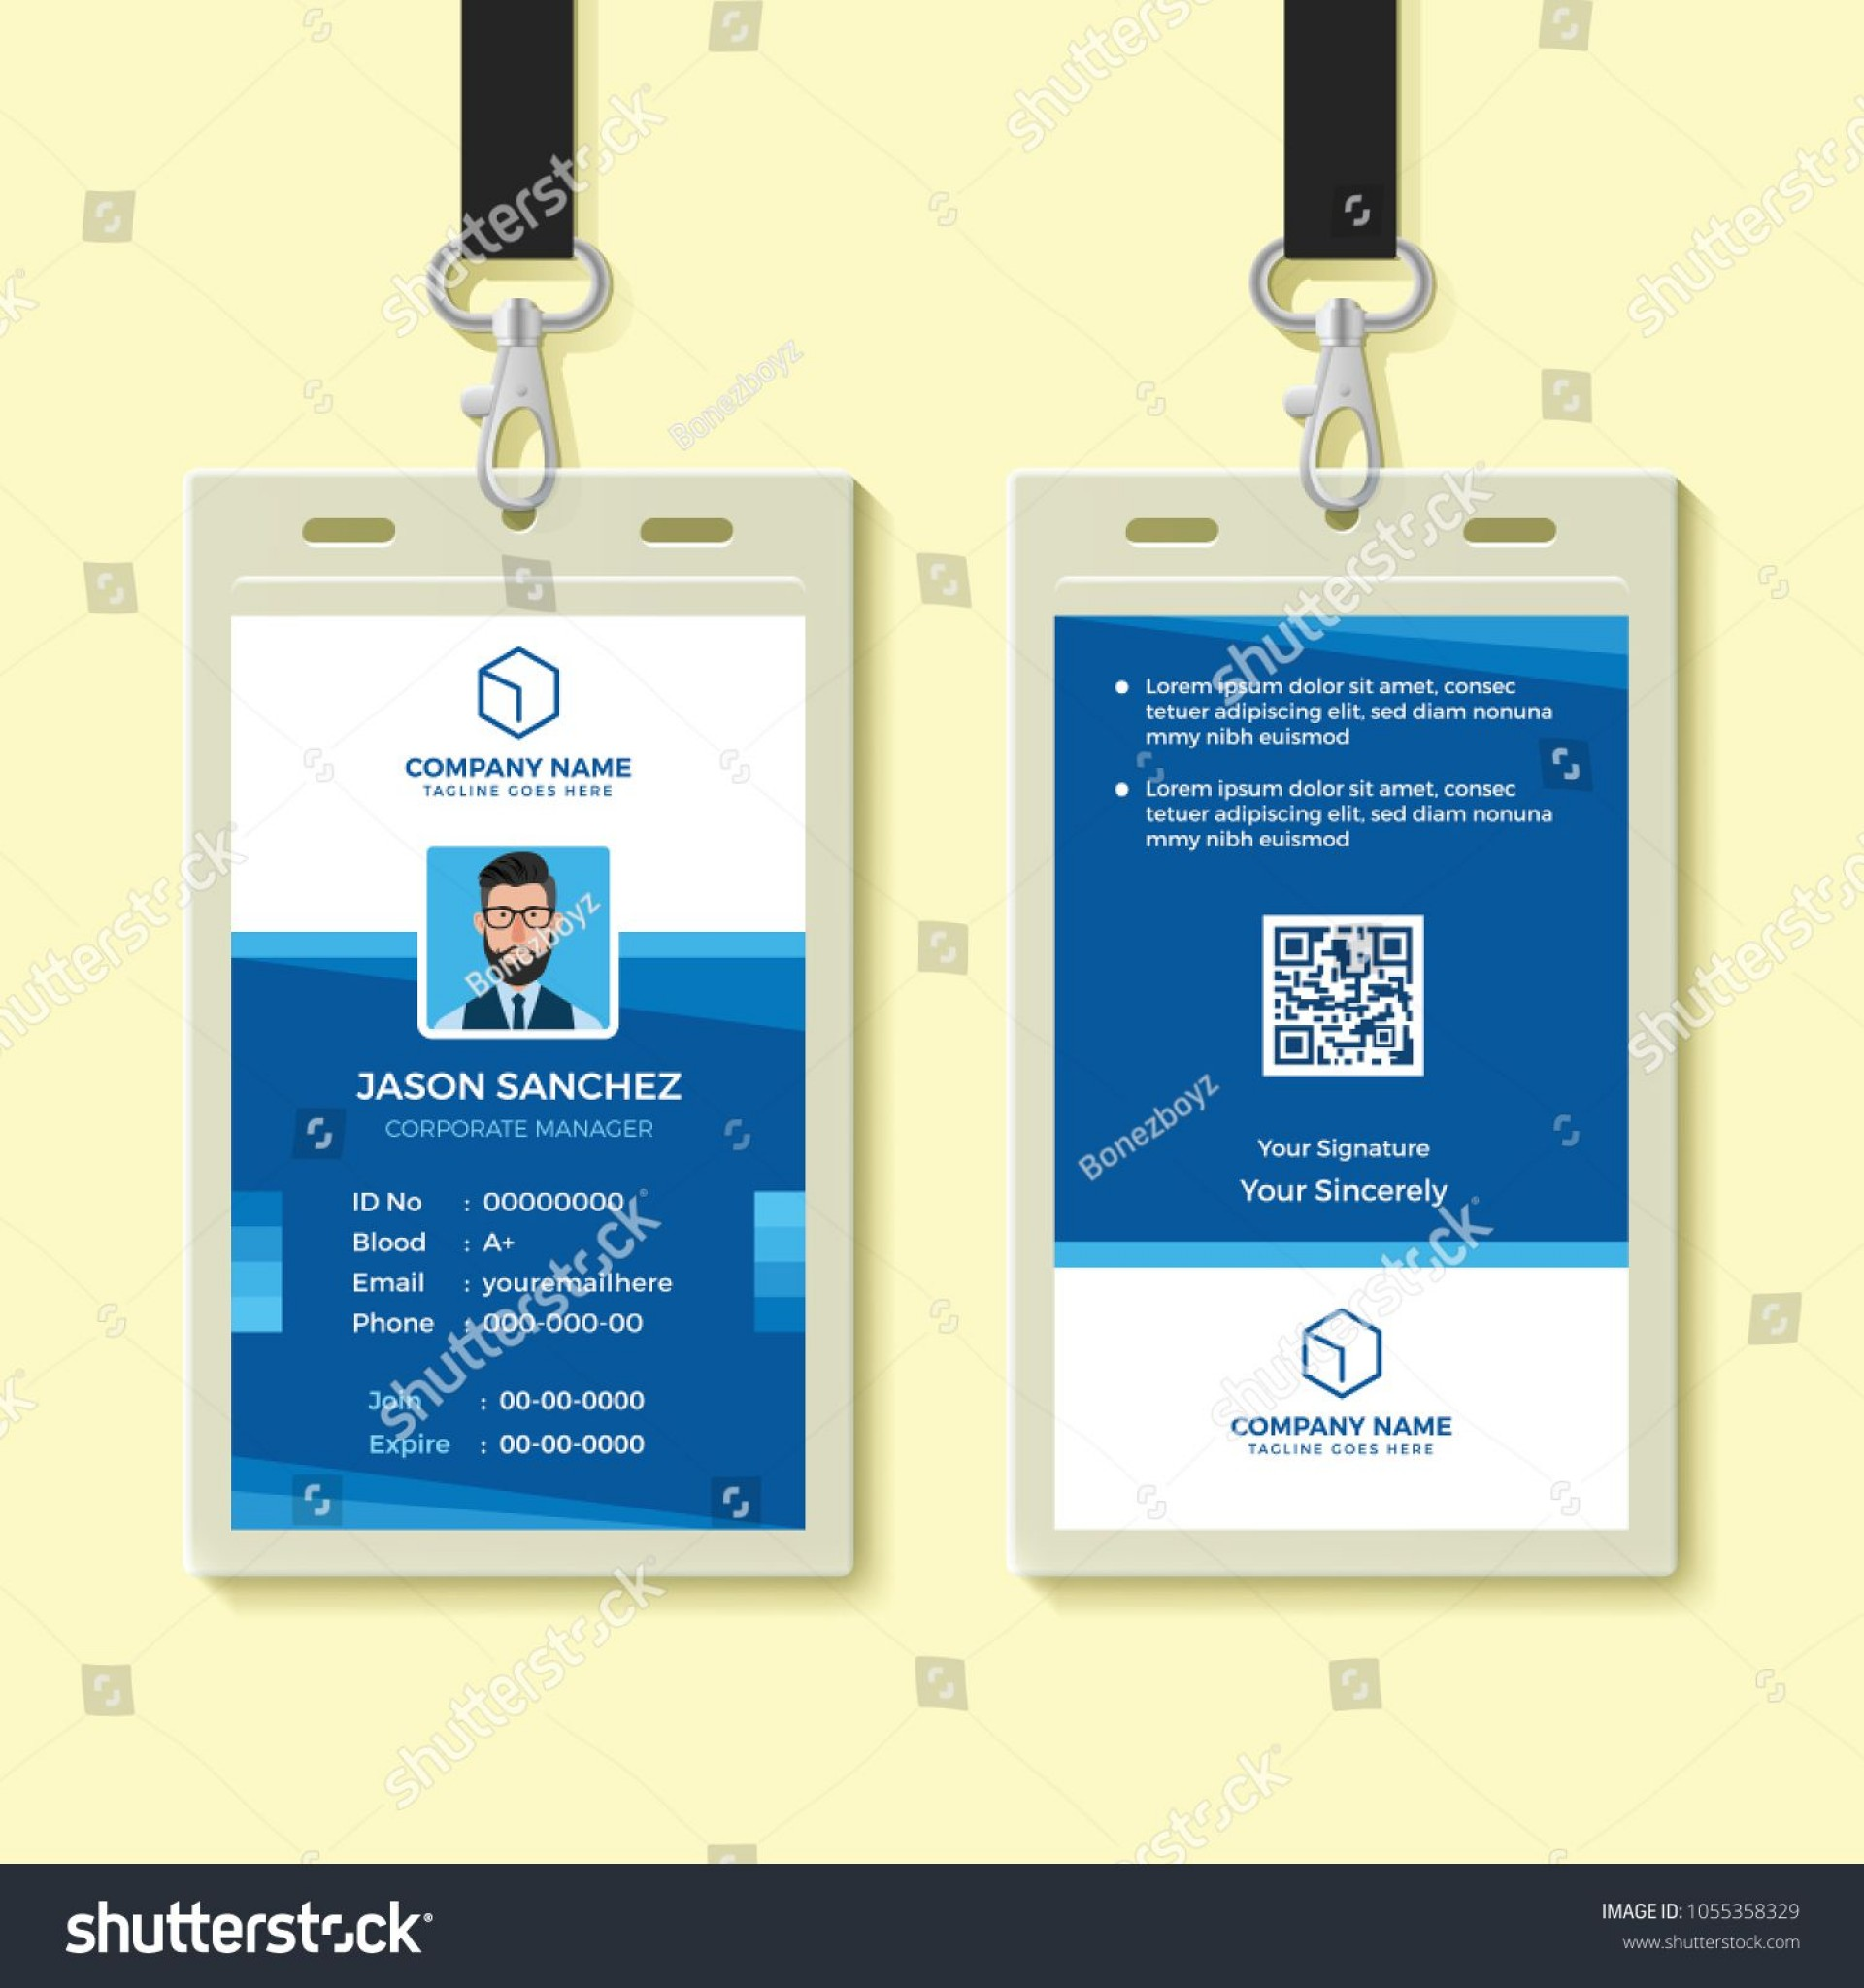 009 Shocking Employee Id Badge Template Idea  Avery Card Free Download Word1920